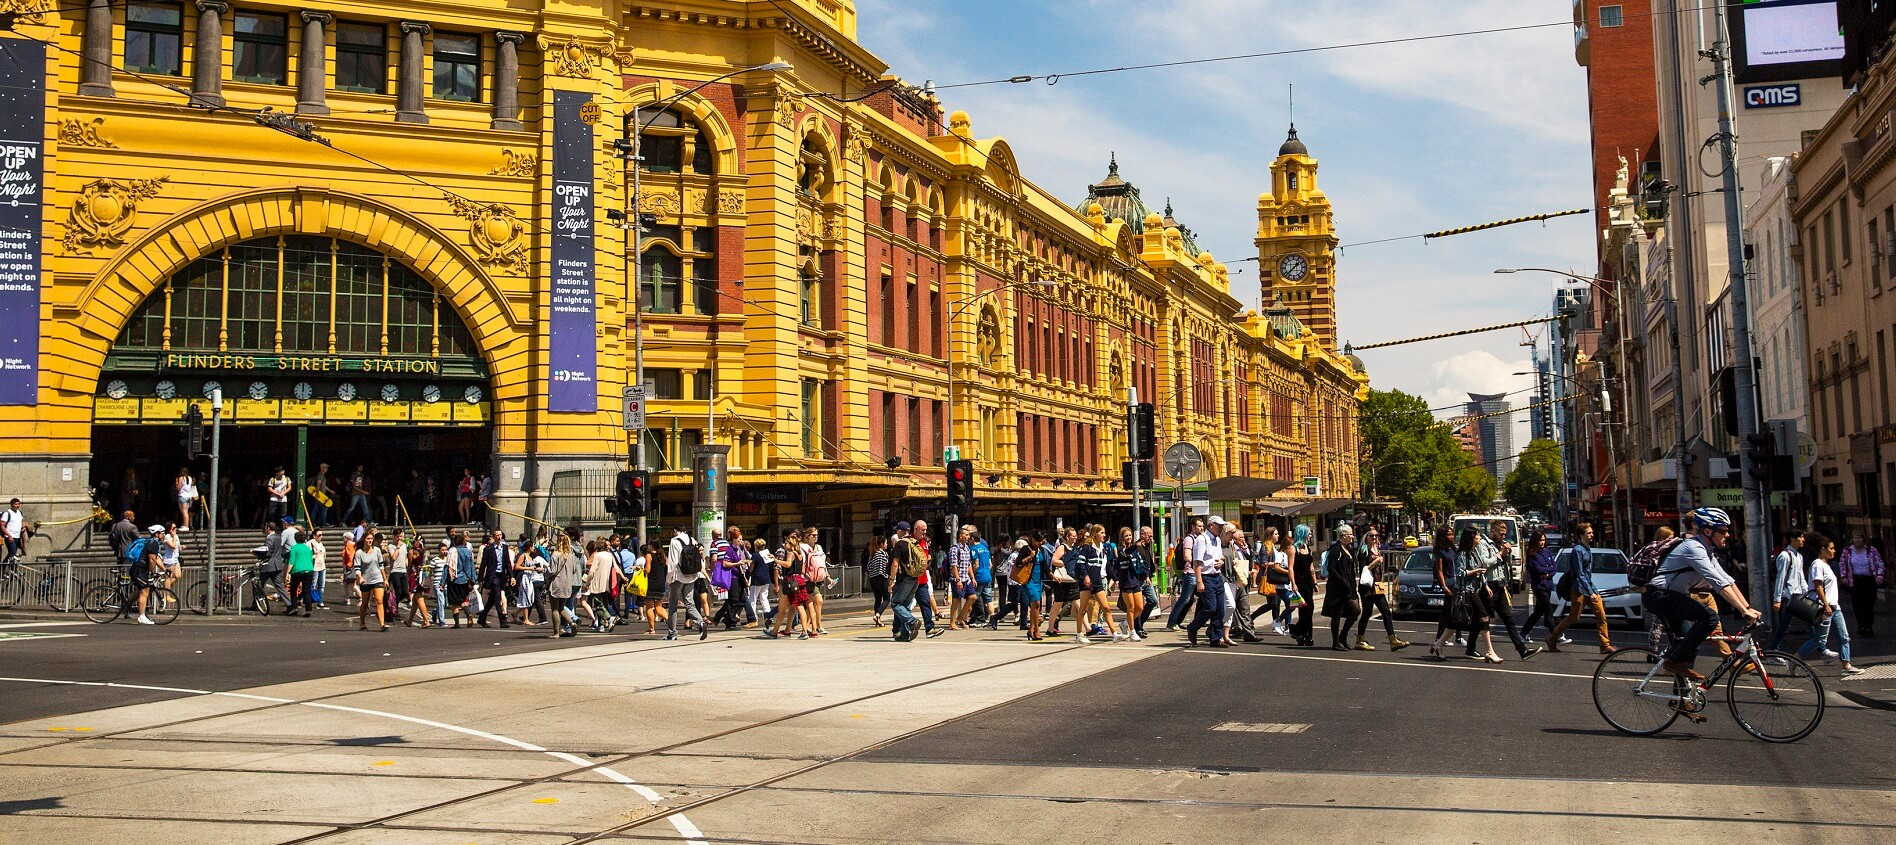 Why was Melbourne the most liveable city in the world?